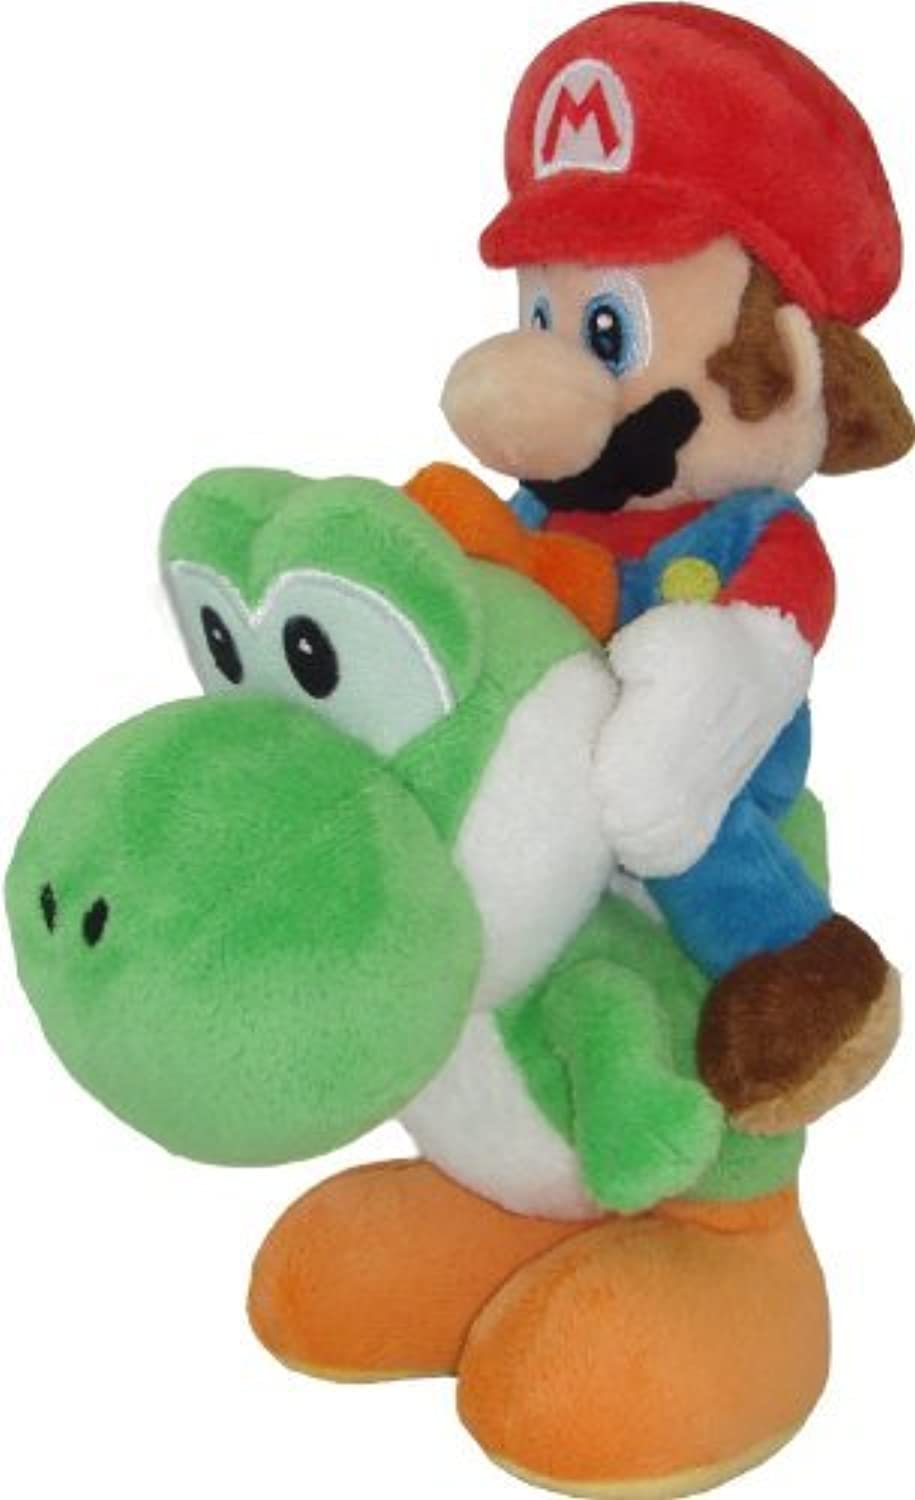 Sanei Super Mario Plush Series Plush Doll  8 Mario and Yoshi Plush Japanese Import by Sanei